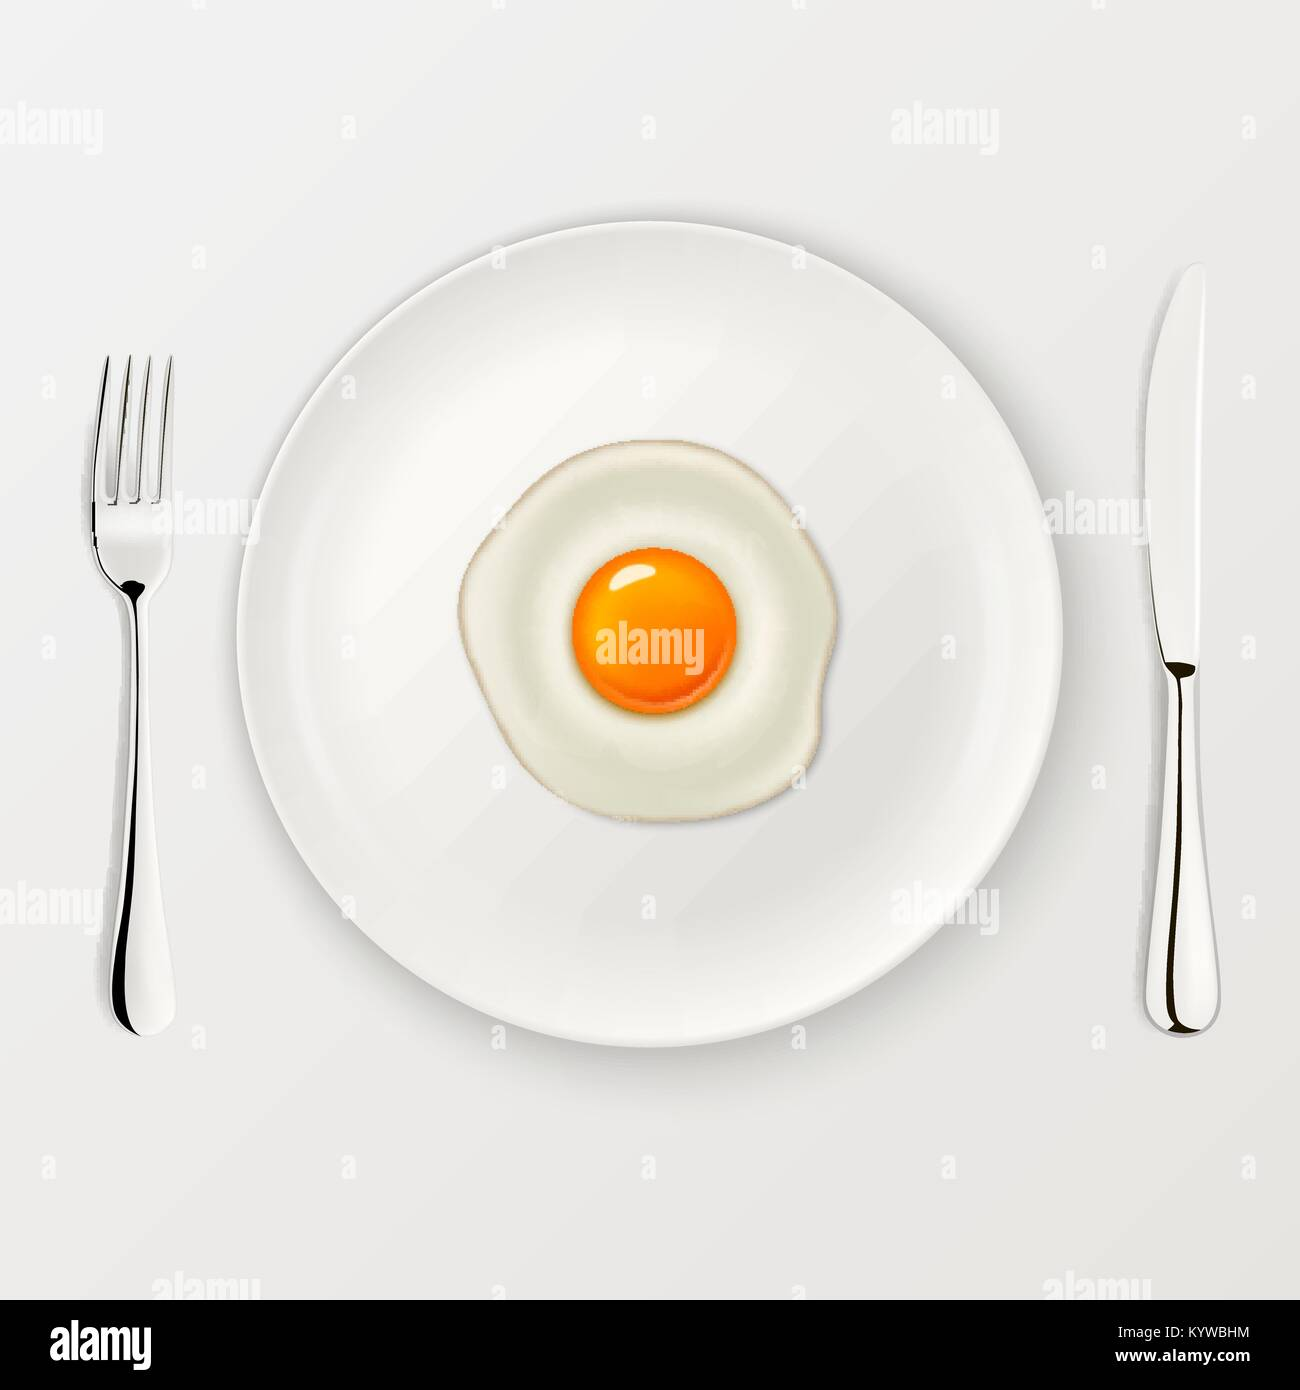 Realistic vector fried egg icon on a plate with fork and knife. Design template. - Stock Vector